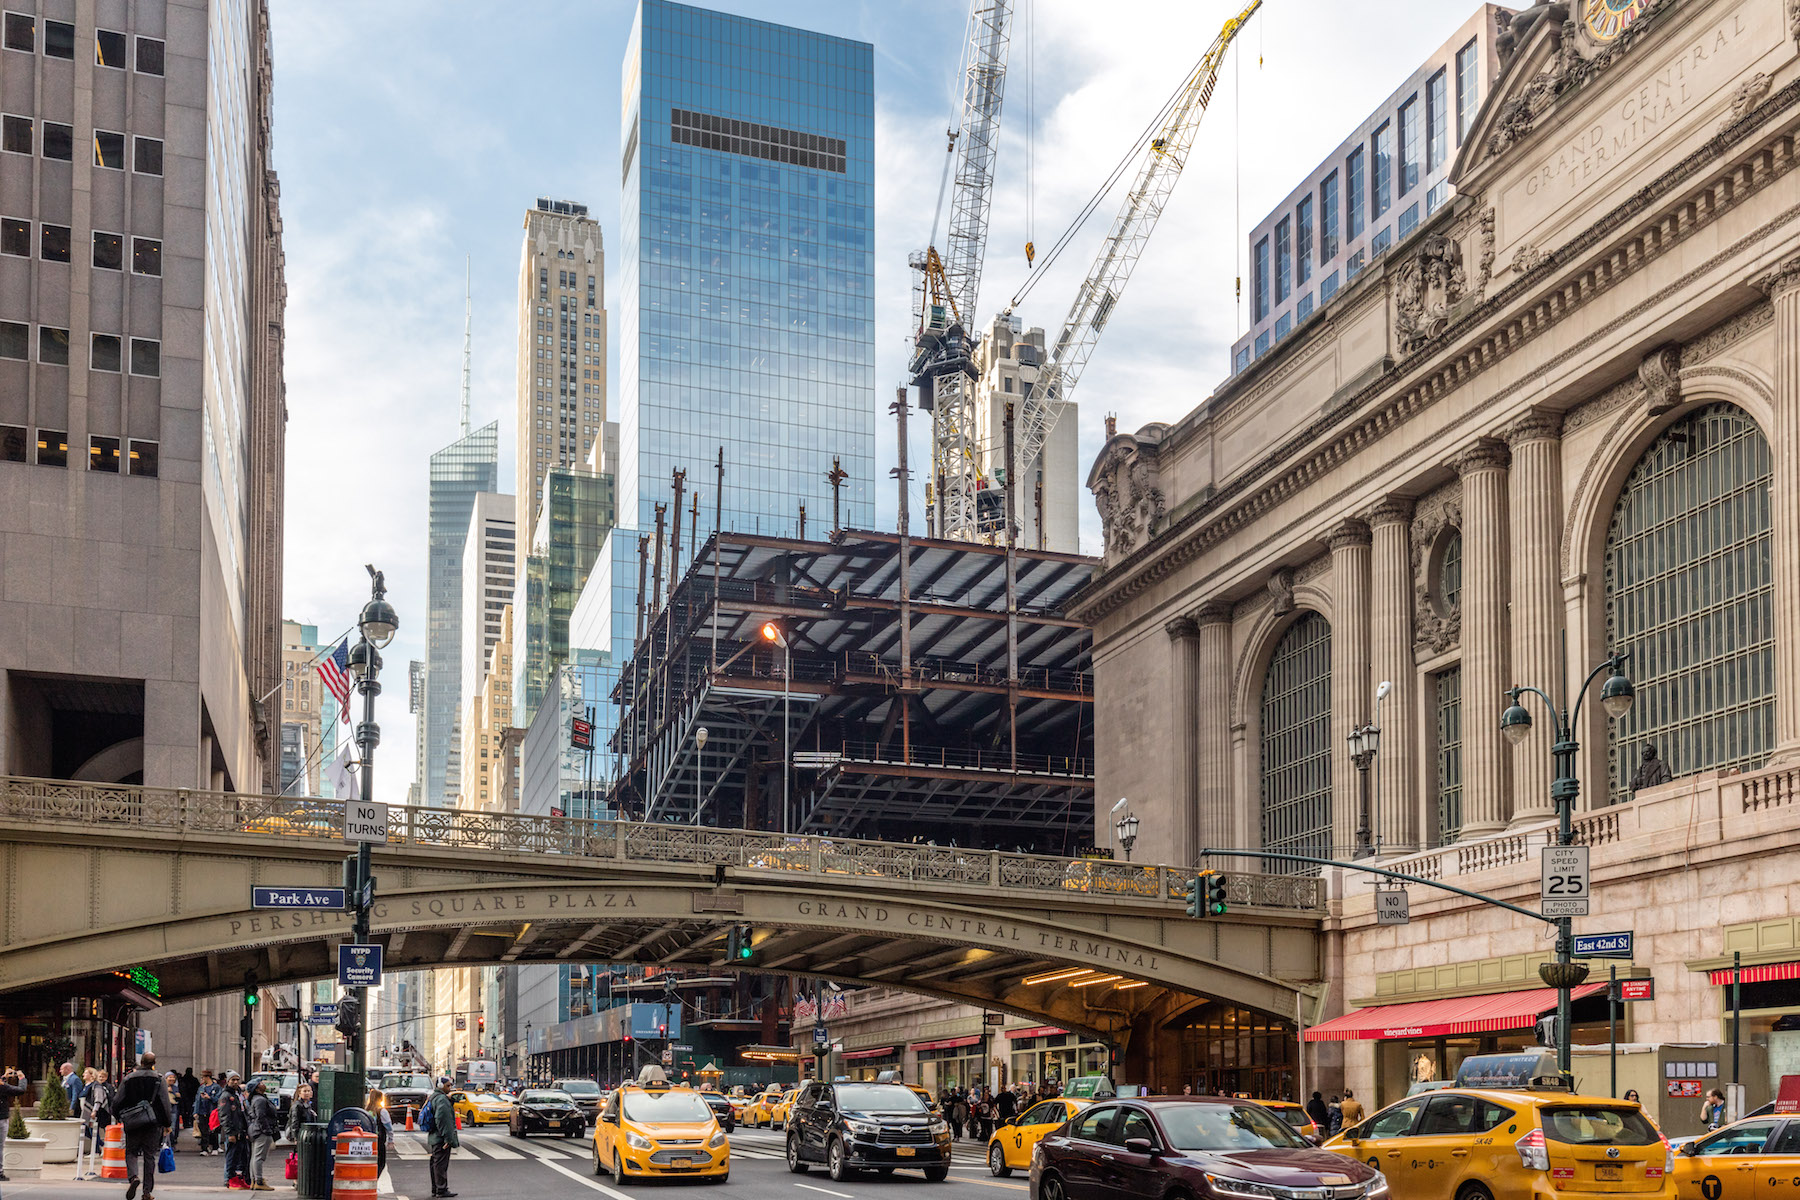 One Vanderbilt, image by Max Touhley